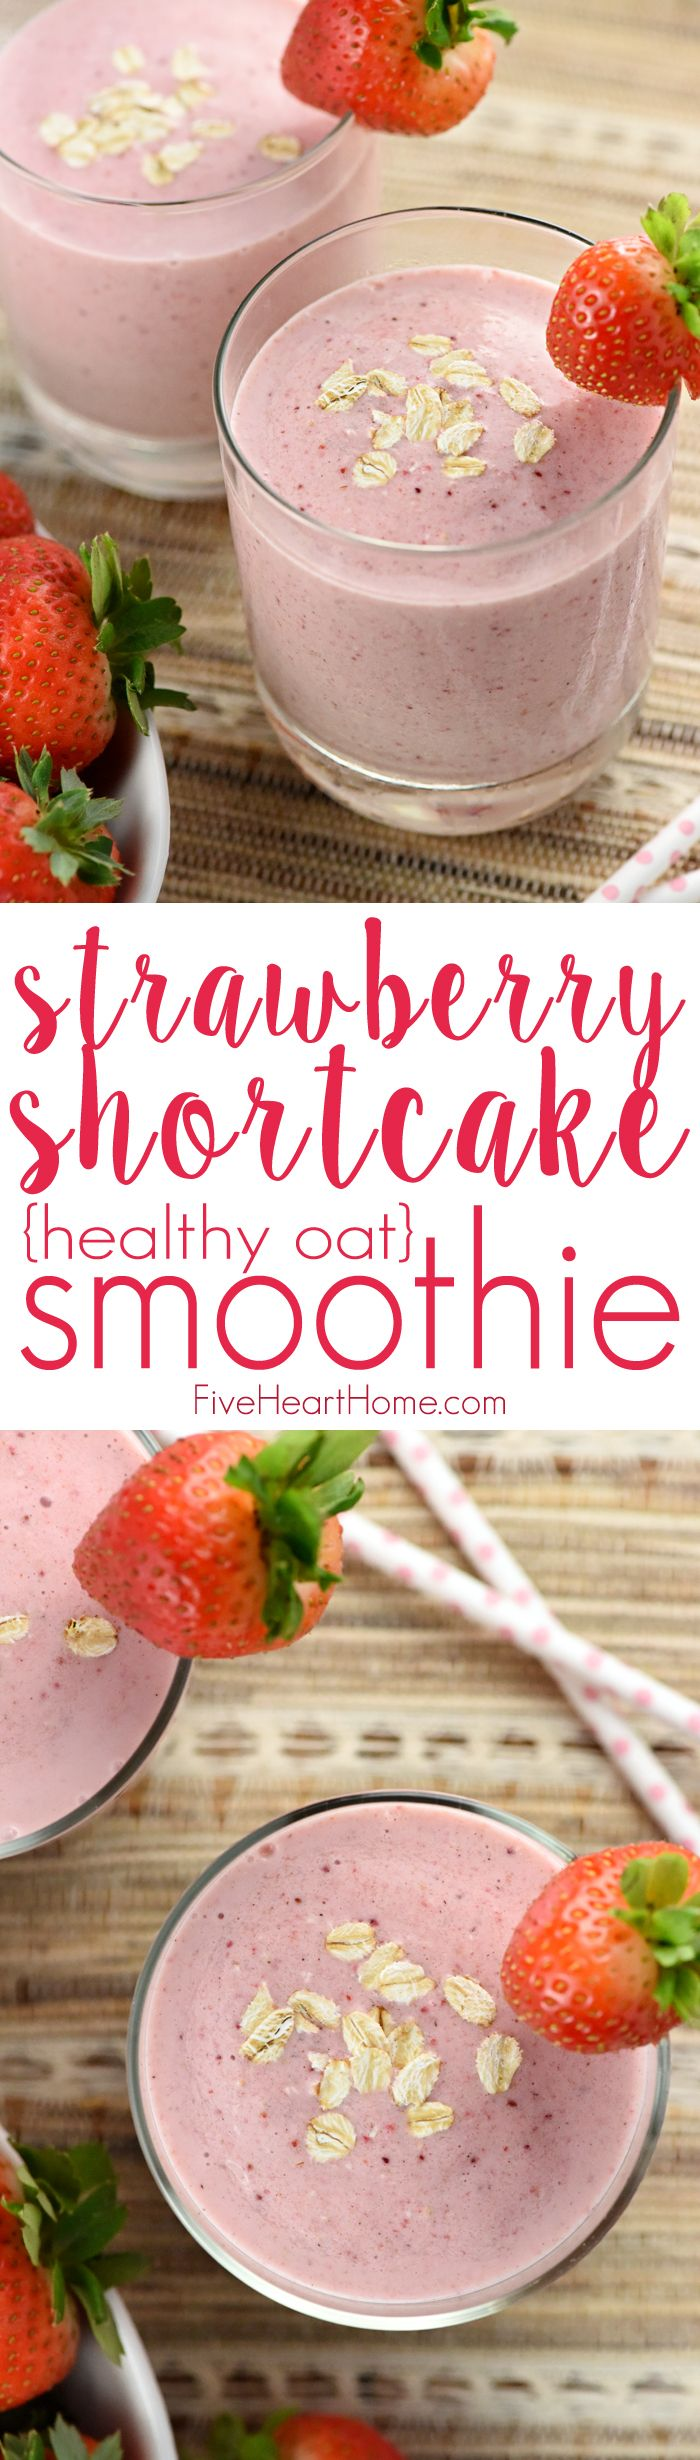 Strawberry Shortcake Smoothie ~ this healthy oat smoothie boasts fiber, protein, and vitamins yet tastes like a freshly baked treat! | FiveHeartHome.com: